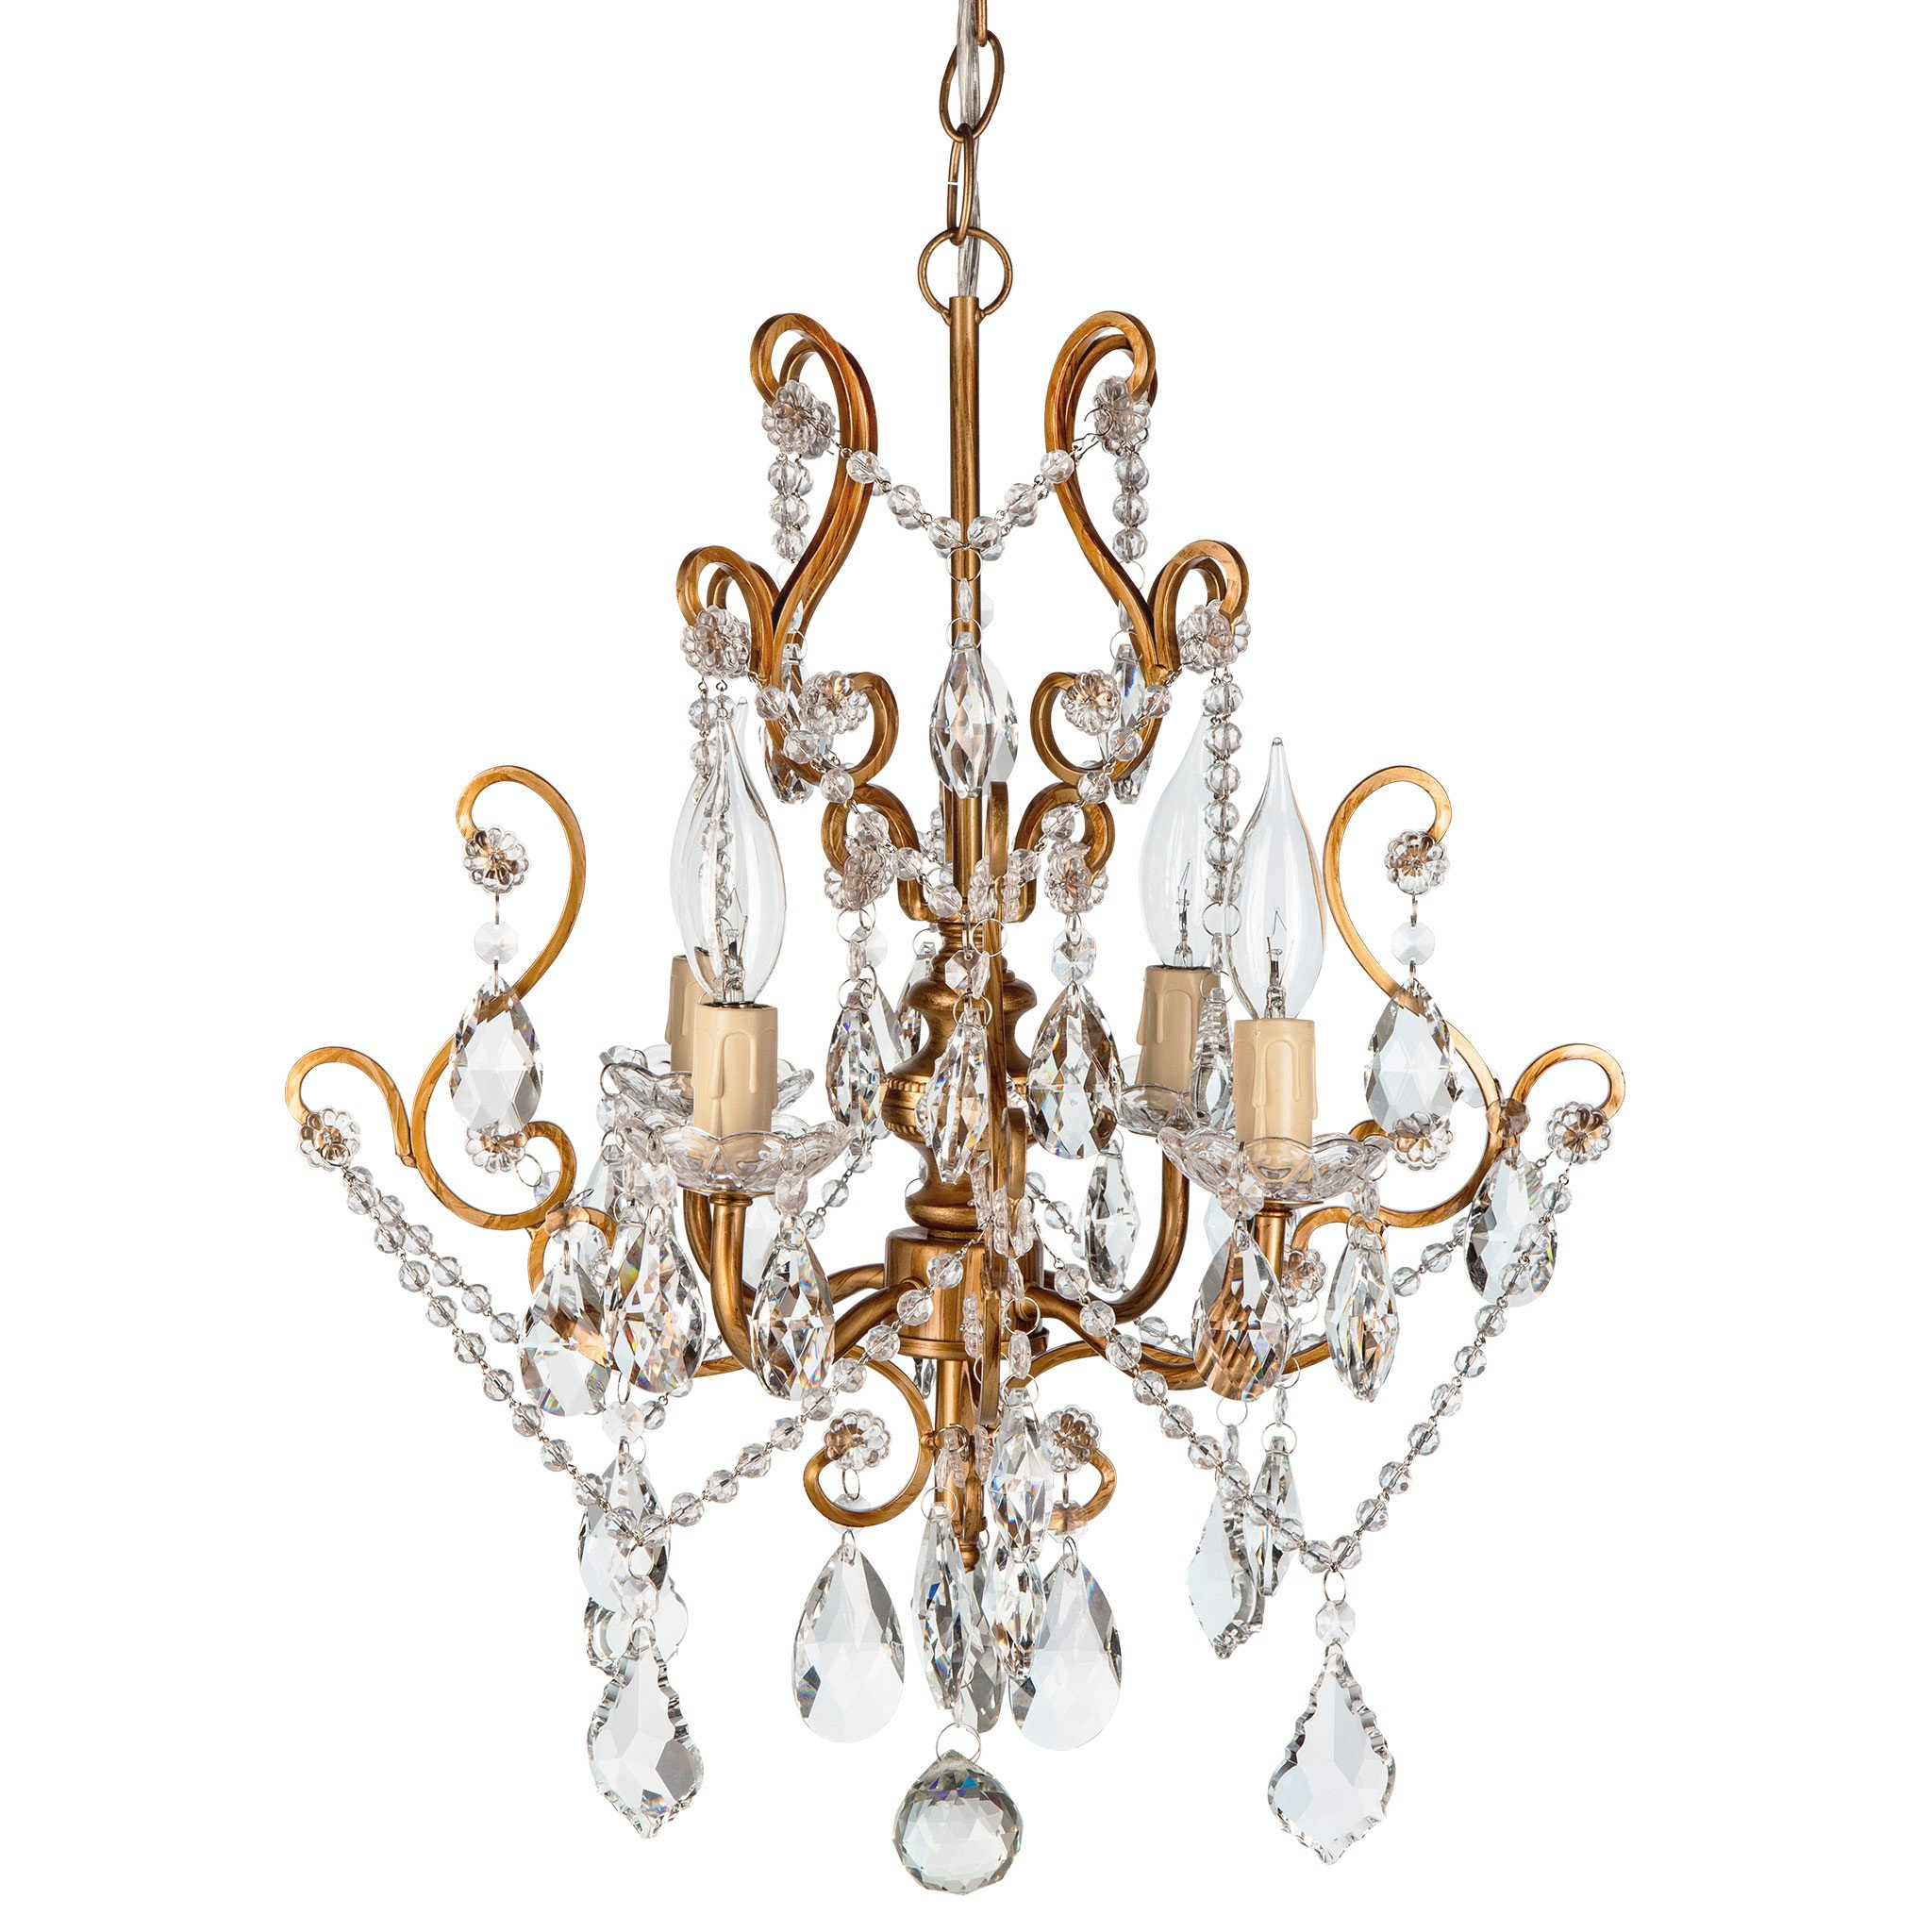 Amalfi Decor 4 Light Vintage Crystal Plug-In Chandelier (Gold) | H | Wrought Iron Frame with Glass Crystals